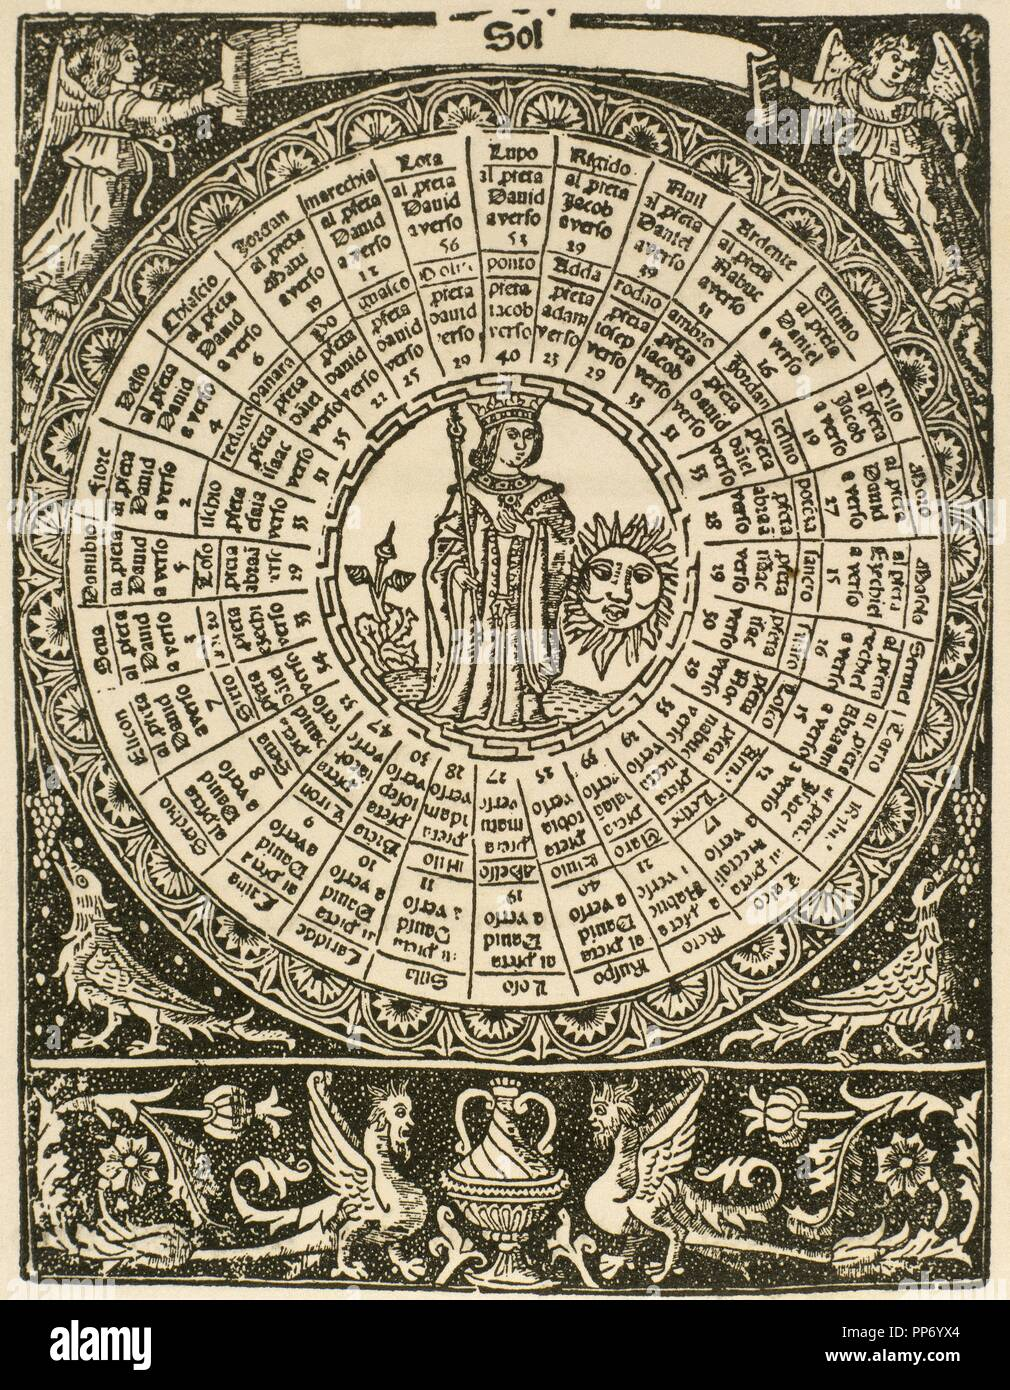 The Sun. Illustration. Libro del Juego del las Suertes. Practicas augurales by Jordi Costilla,  1515. Engraving. Stock Photo